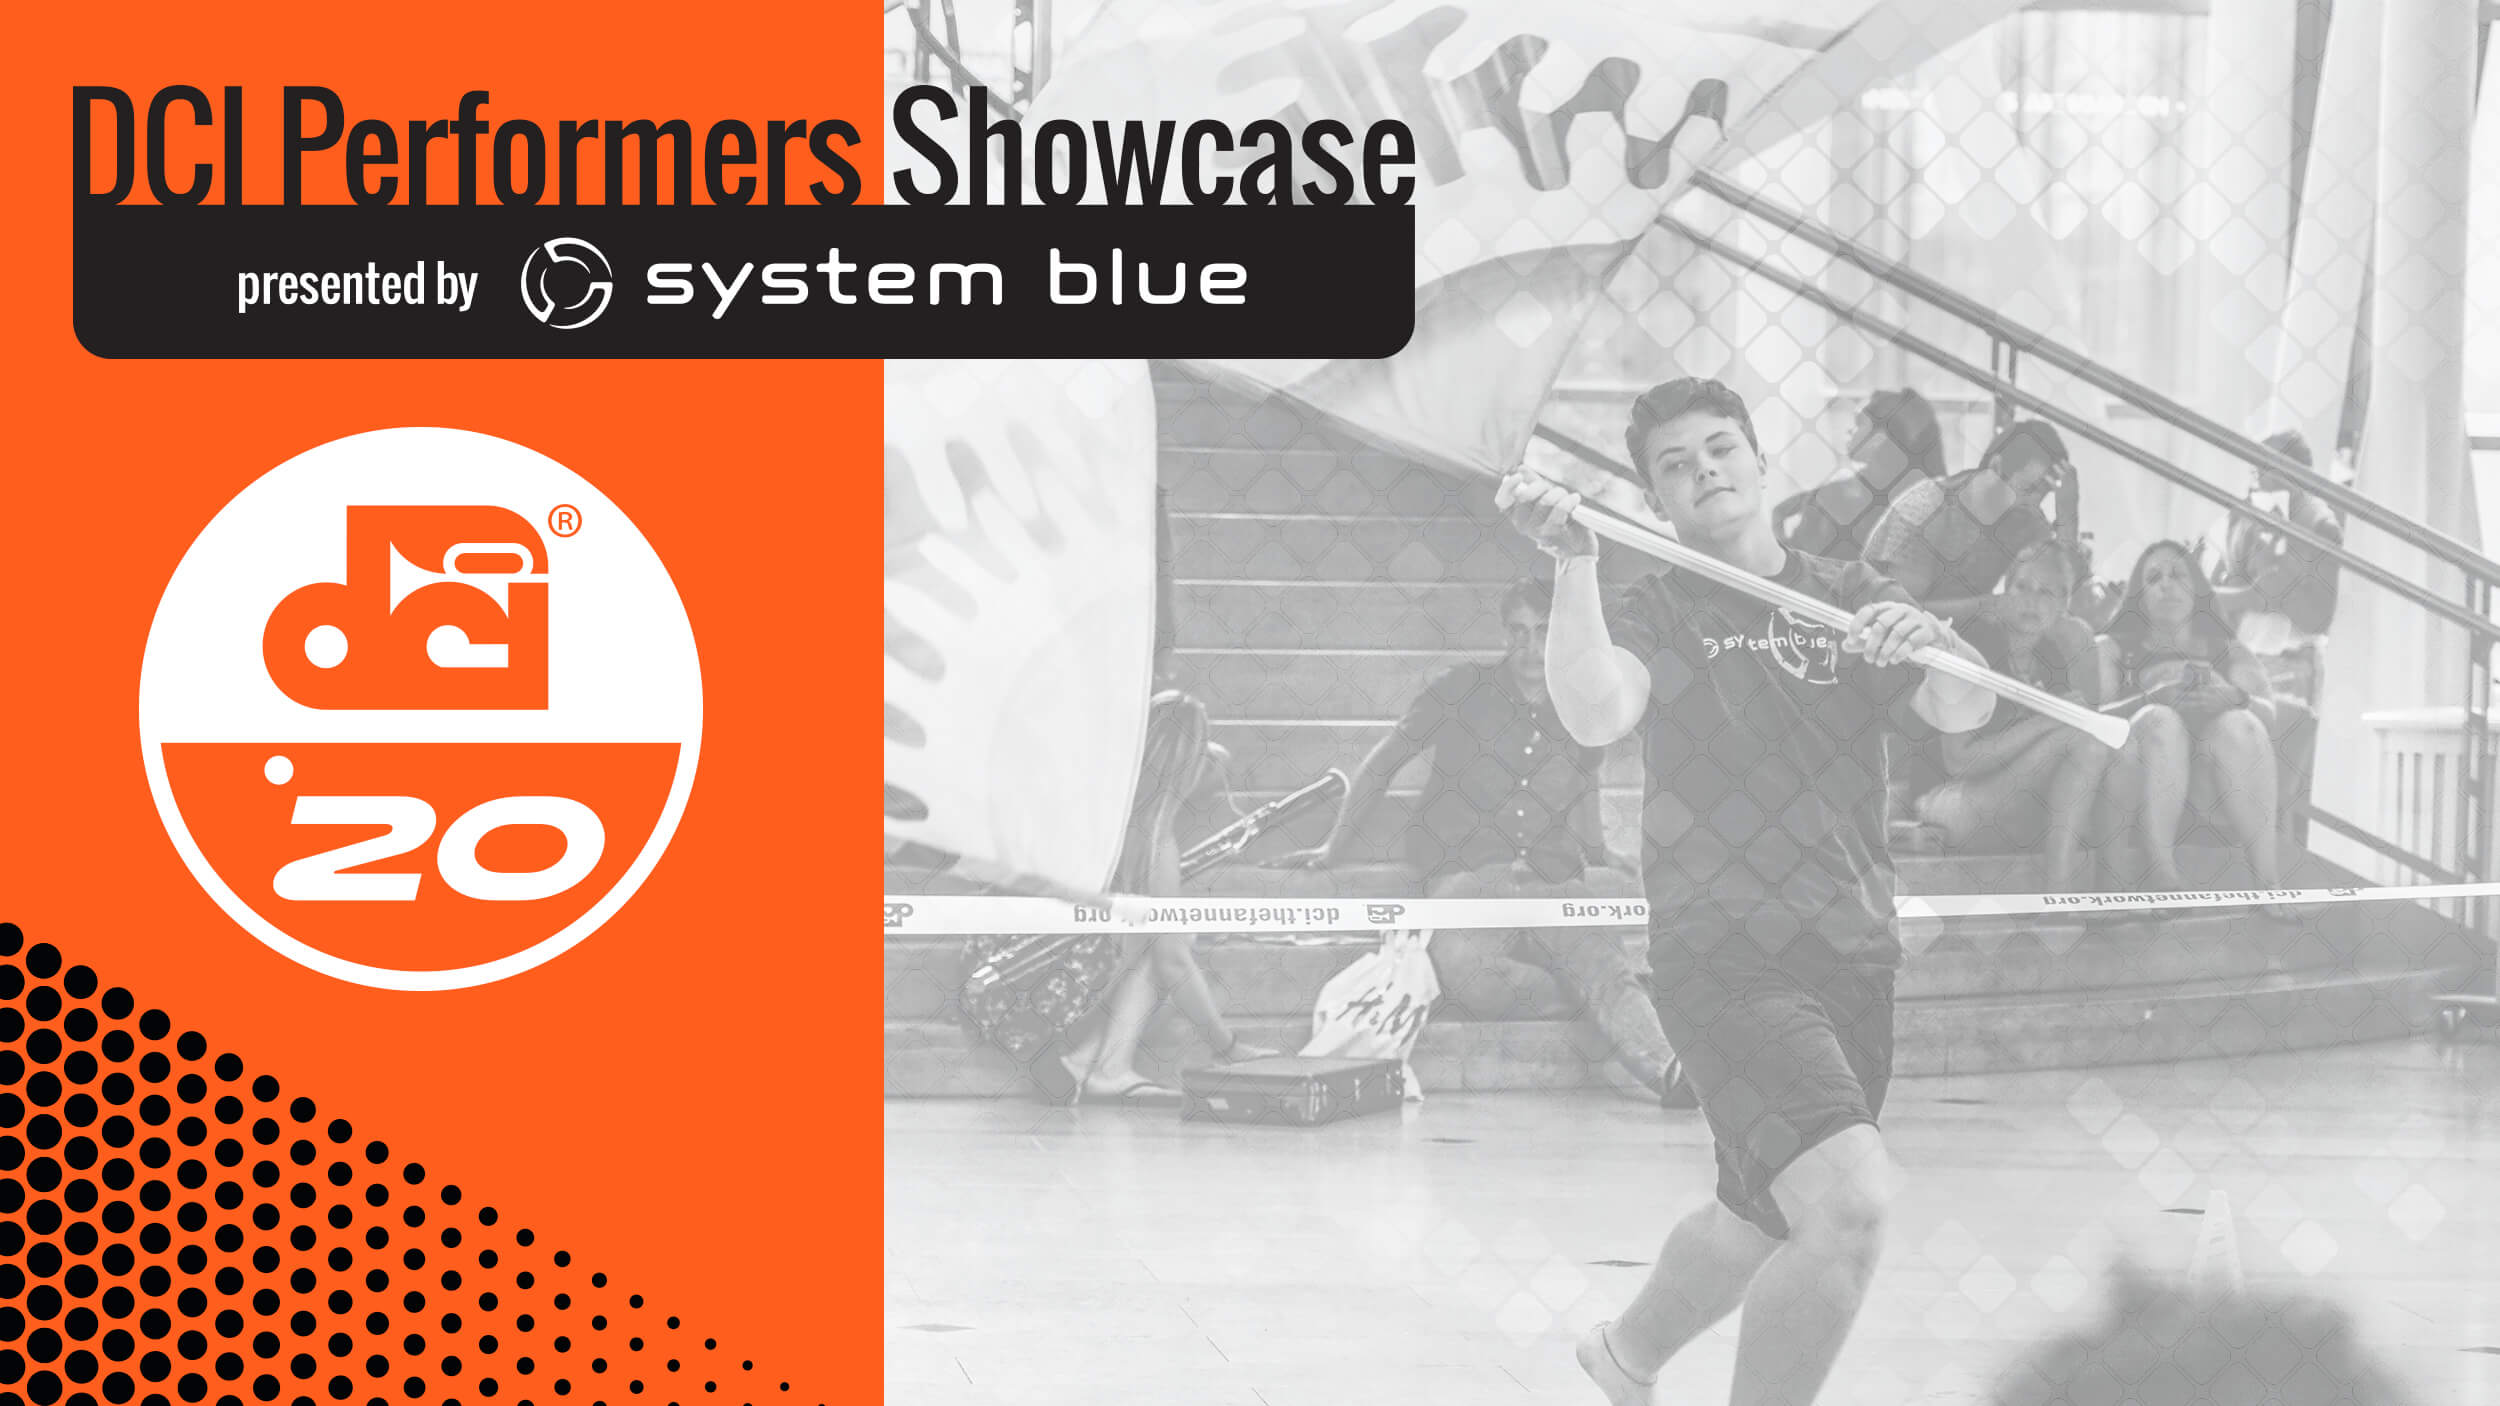 2020 DCI Performers Showcase results